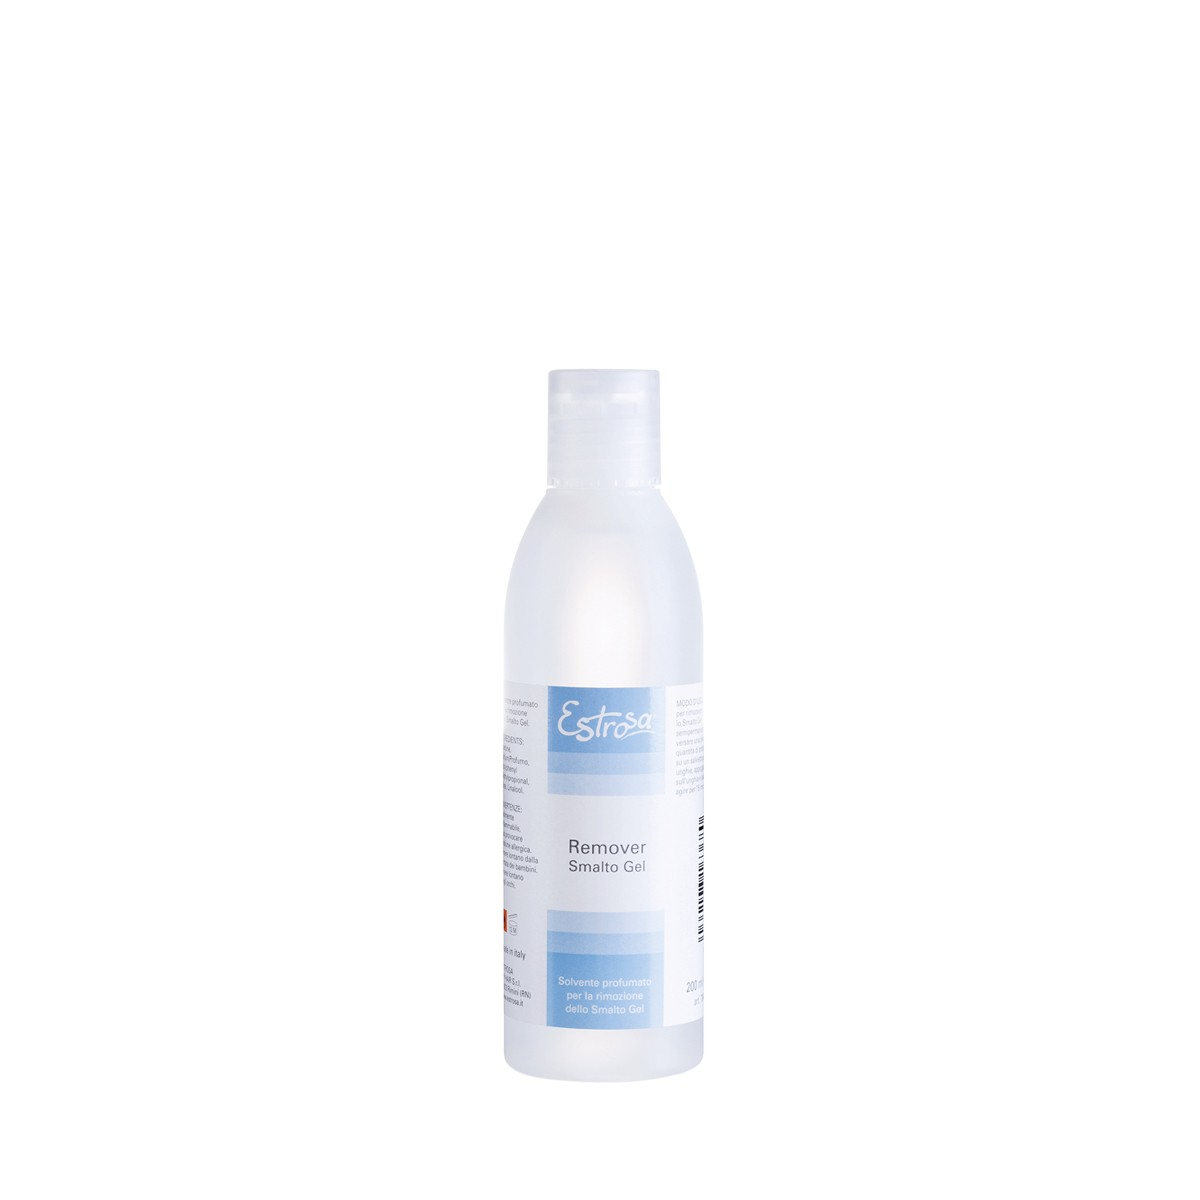 REMOVER SMALTO GEL - 125 ML